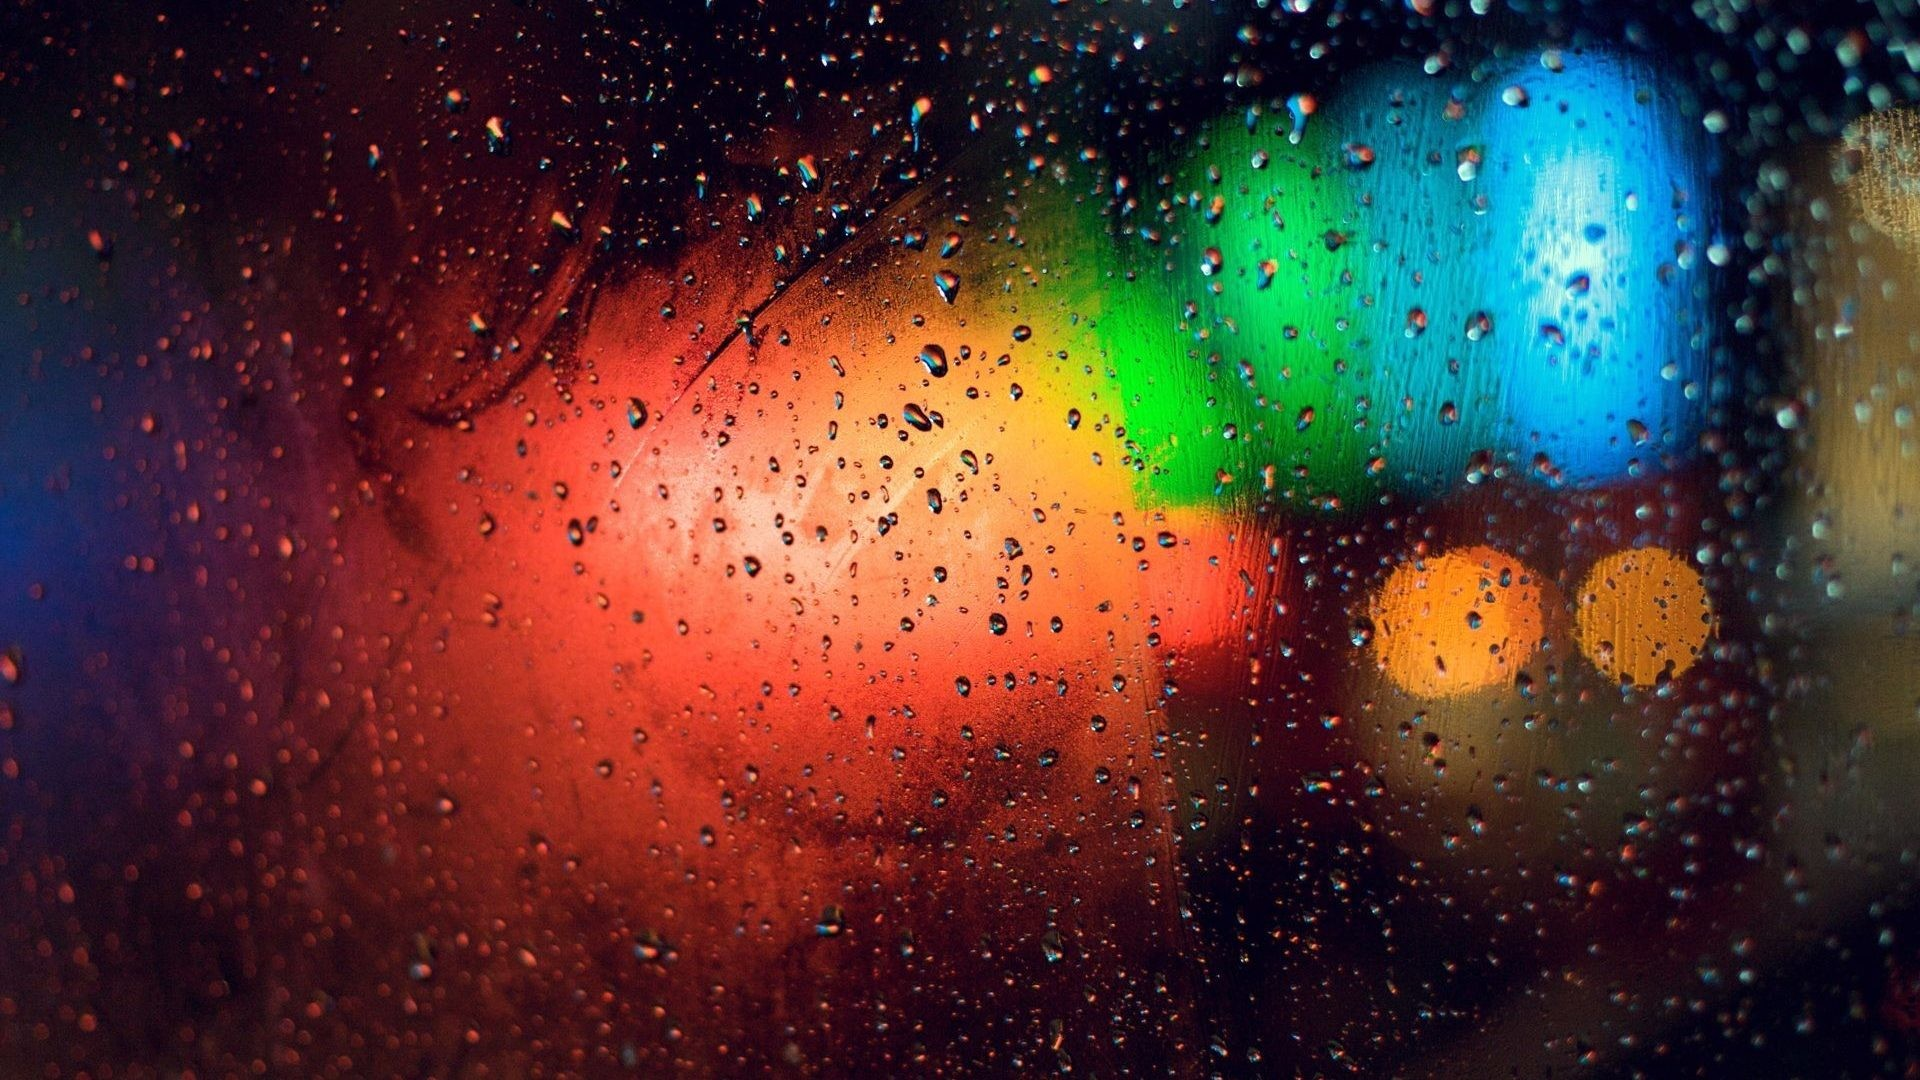 Glass Tag – Panes Glass Window Rain Cool Nature Desktop Backgrounds for HD  16:9